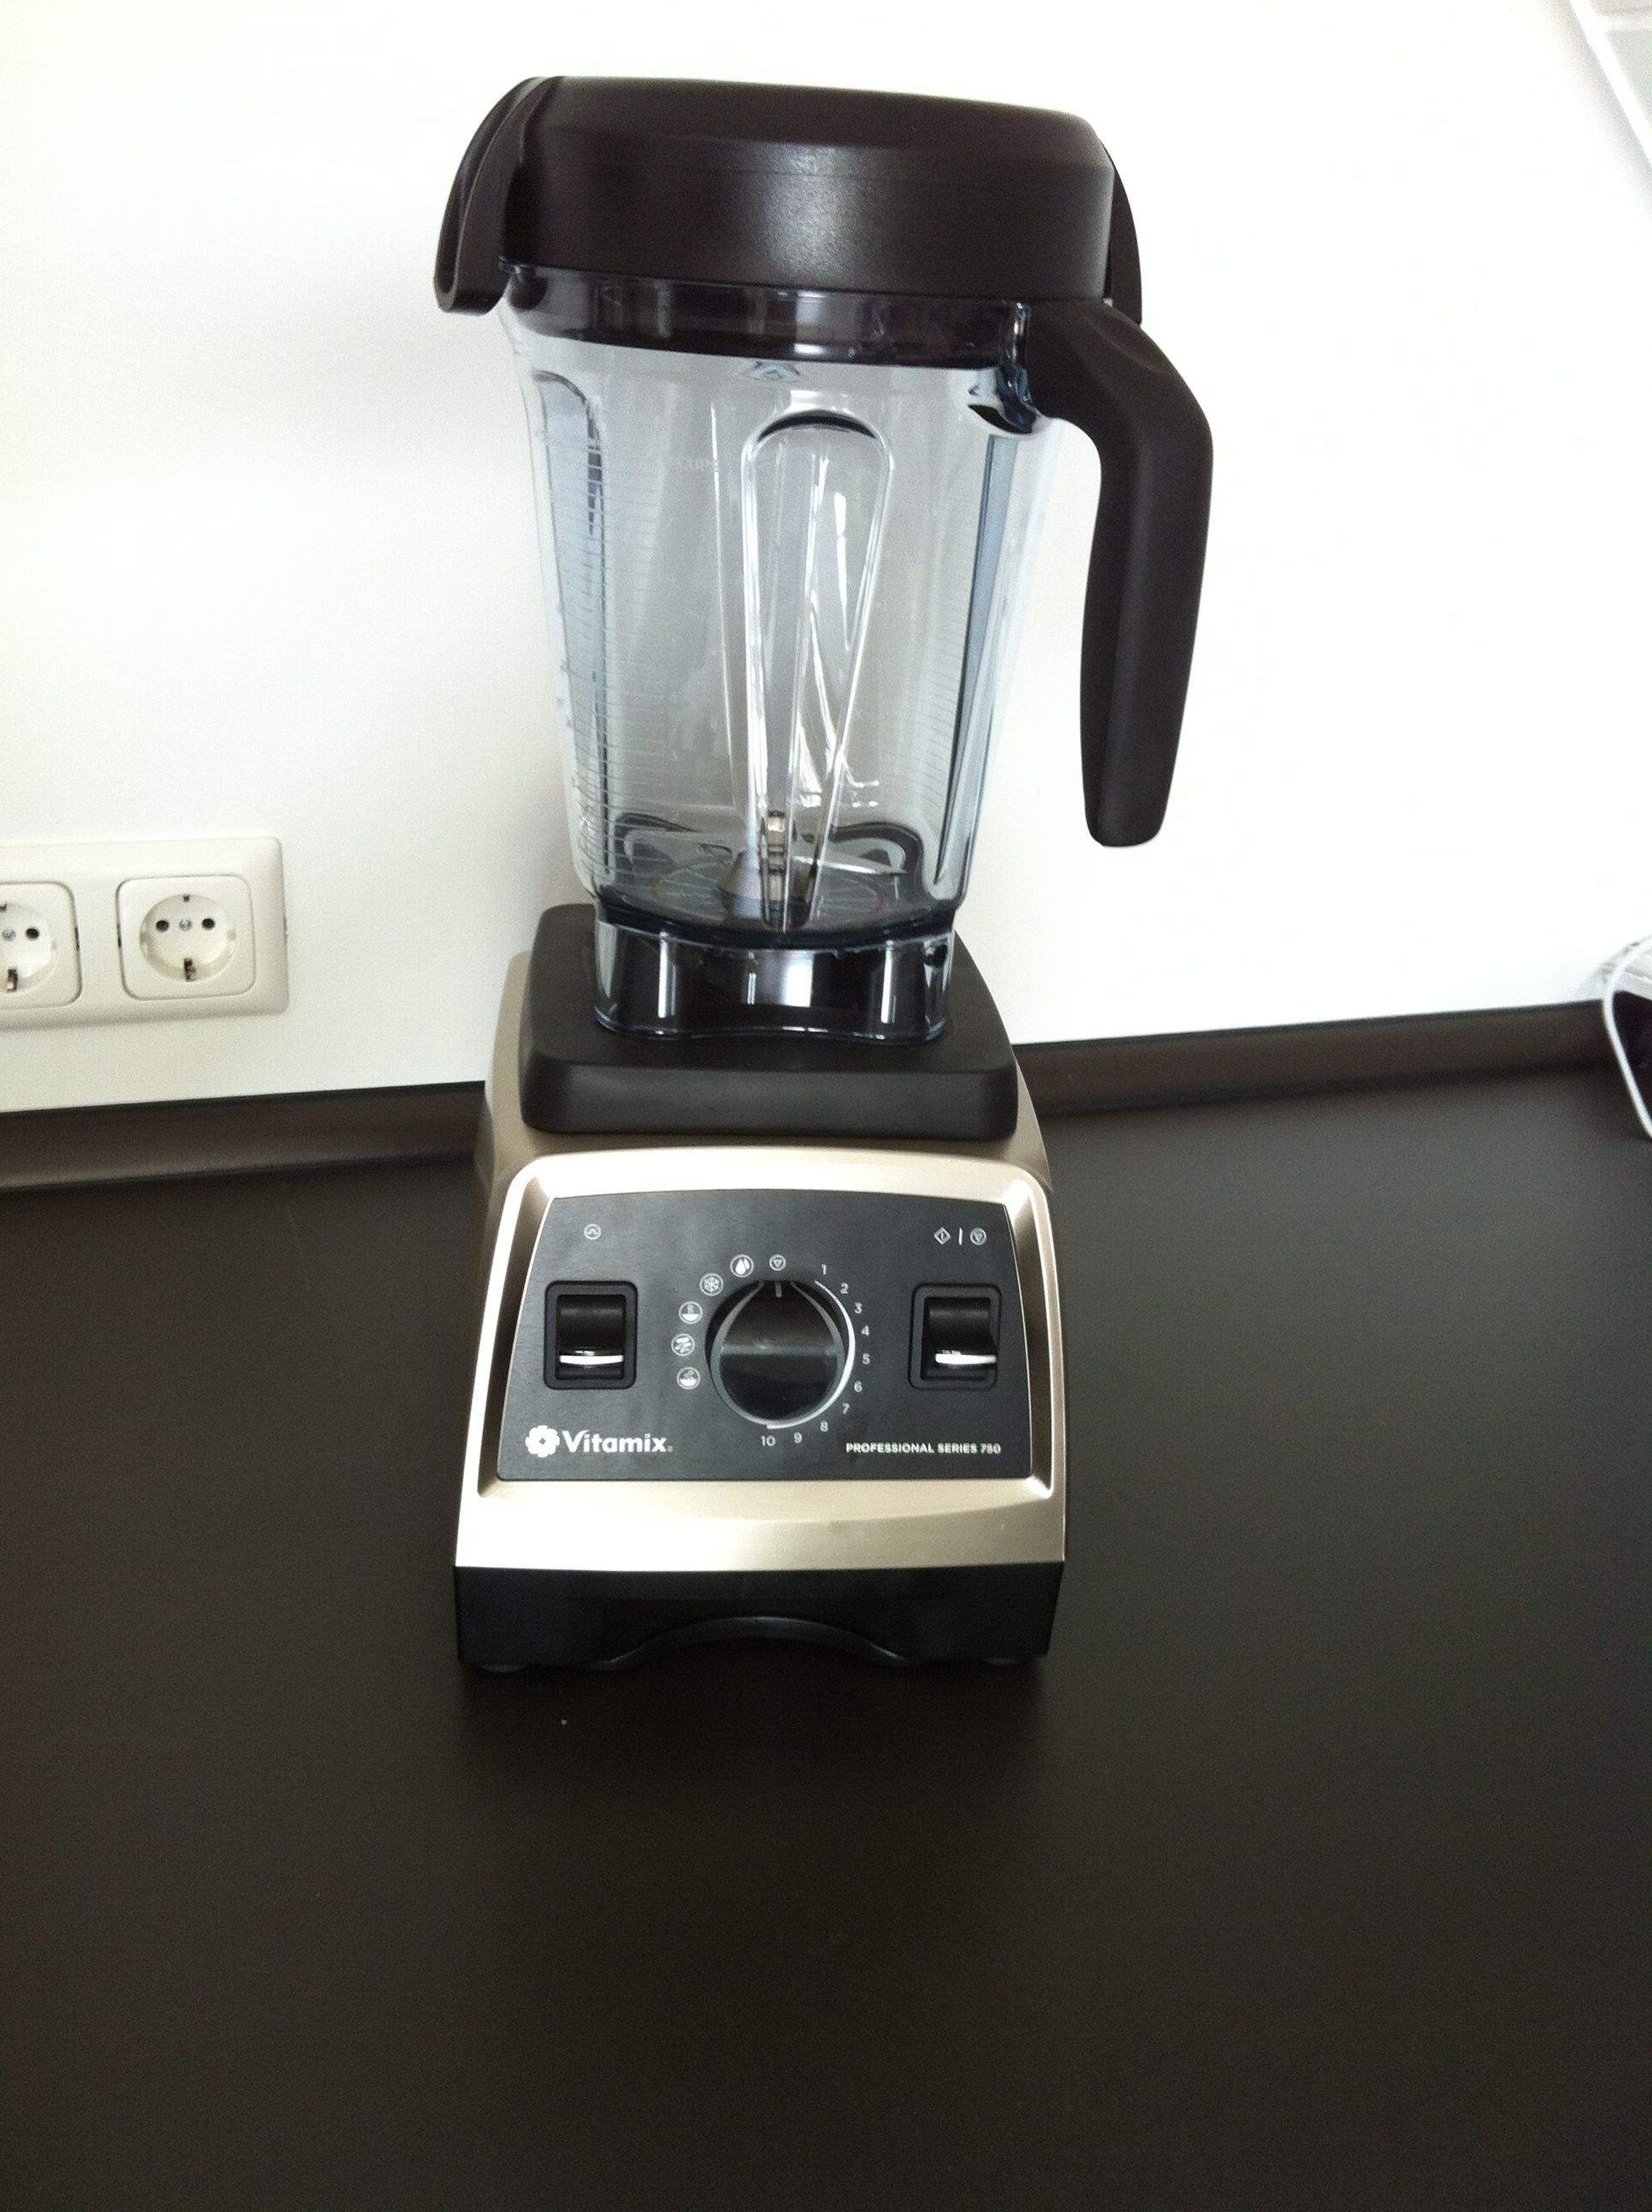 filevitamix series 750jpg - Vitamix 750